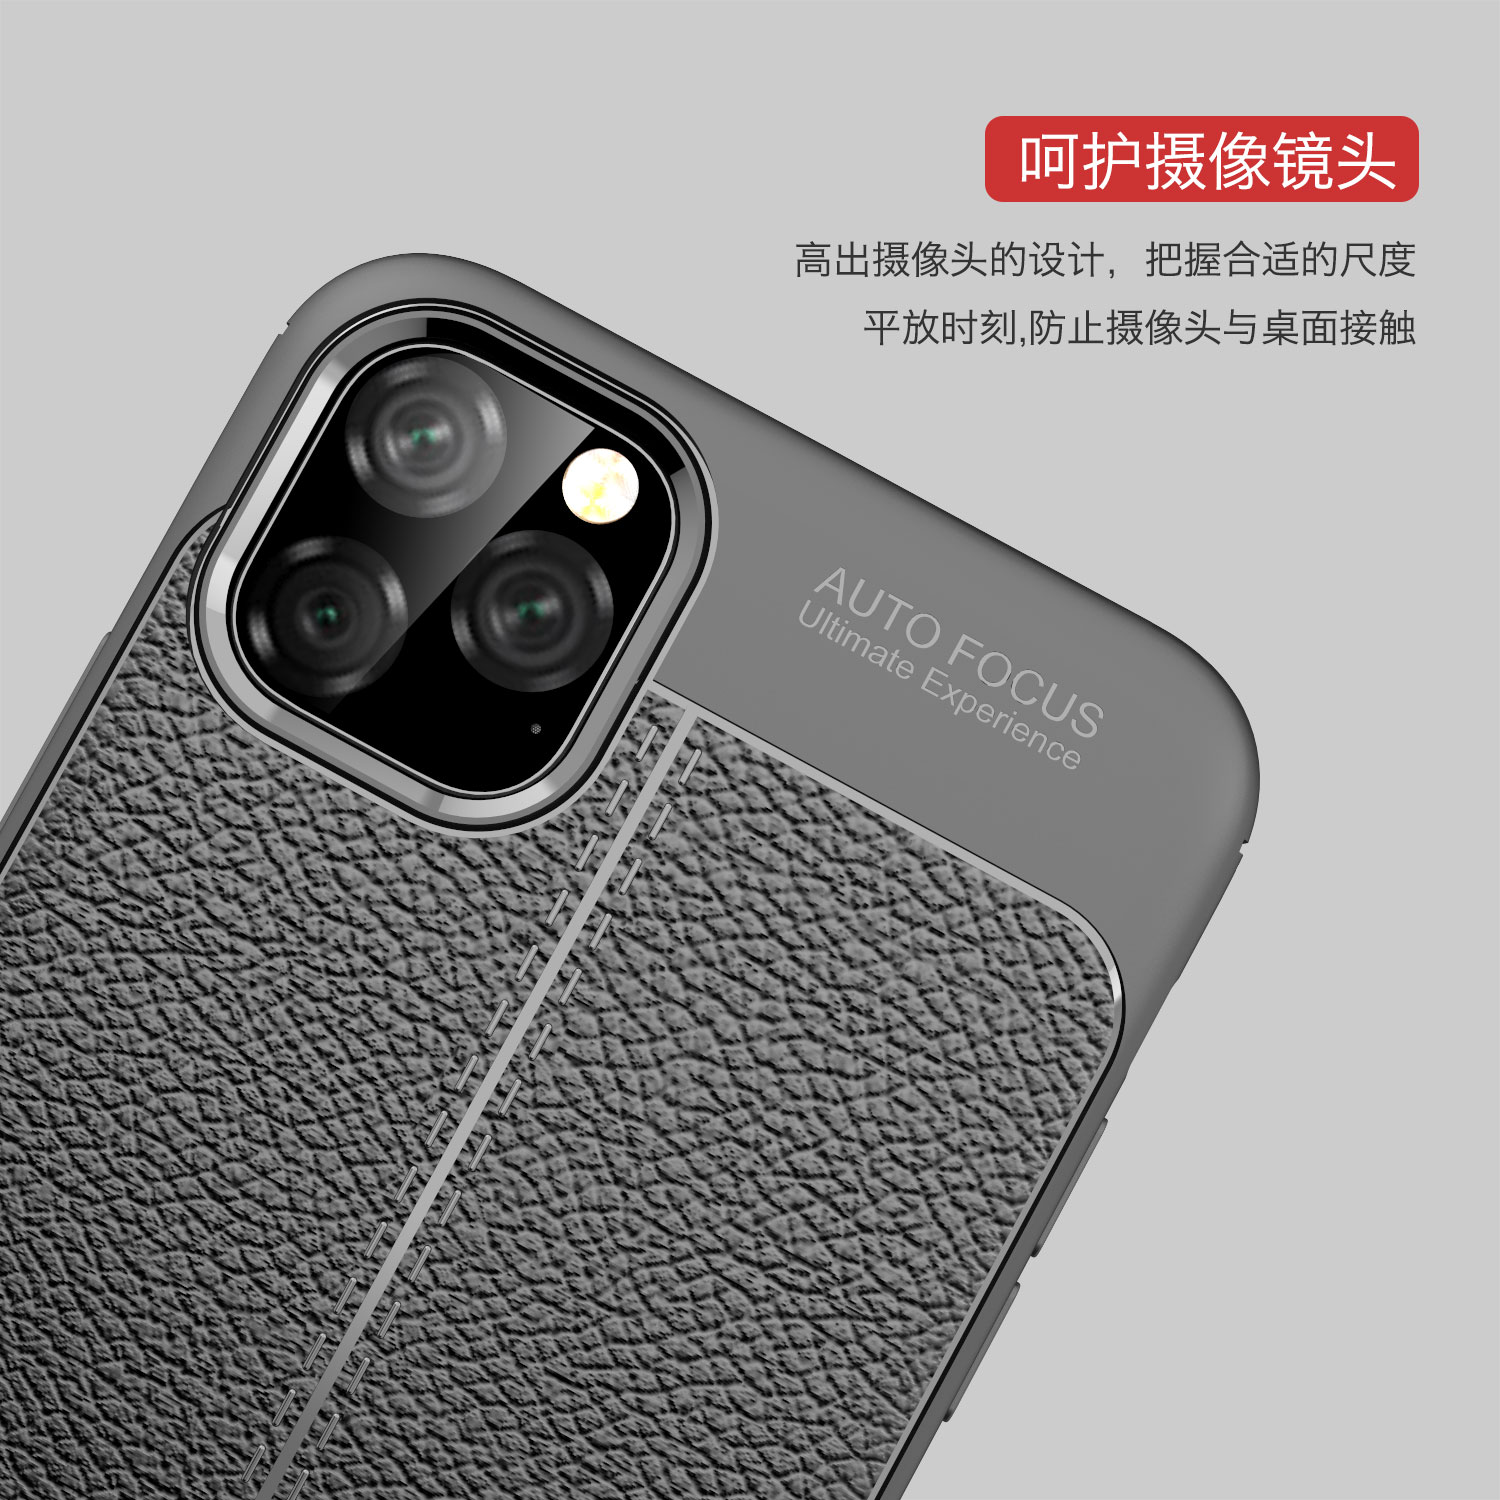 H957c80a479b84fa5b6635f94b0ae8c60B For iPhone 11 Pro Max Case 7 8 5S 6S Plus XR XS SE Apple Case Luxury Leather PU Soft Silicone Phone Back Cover For iPhone 11 Pro